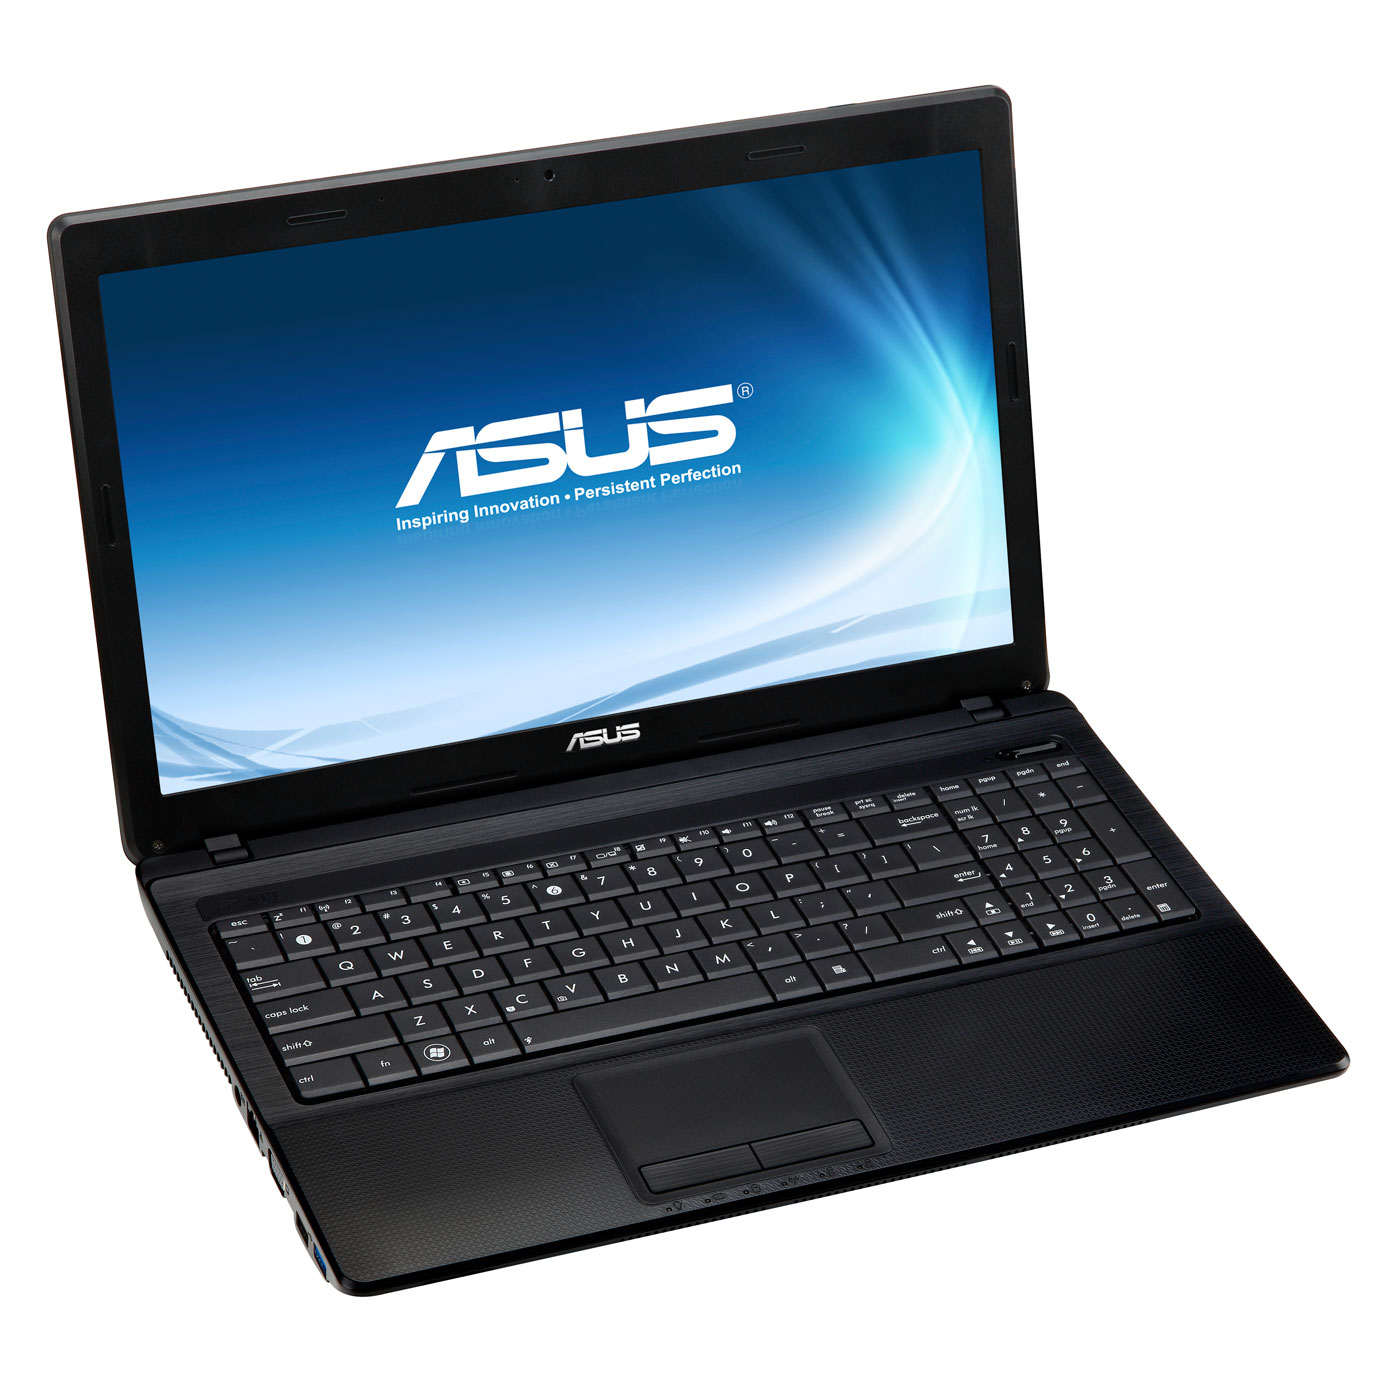 "PC portable ASUS X54C-SX102V Intel Pentium Dual-Core B960 4 Go 320 Go 15.6"" LED Graveur DVD Wi-Fi N Webcam Windows 7 Premium 64 bits (garantie constructeur 1 an)"